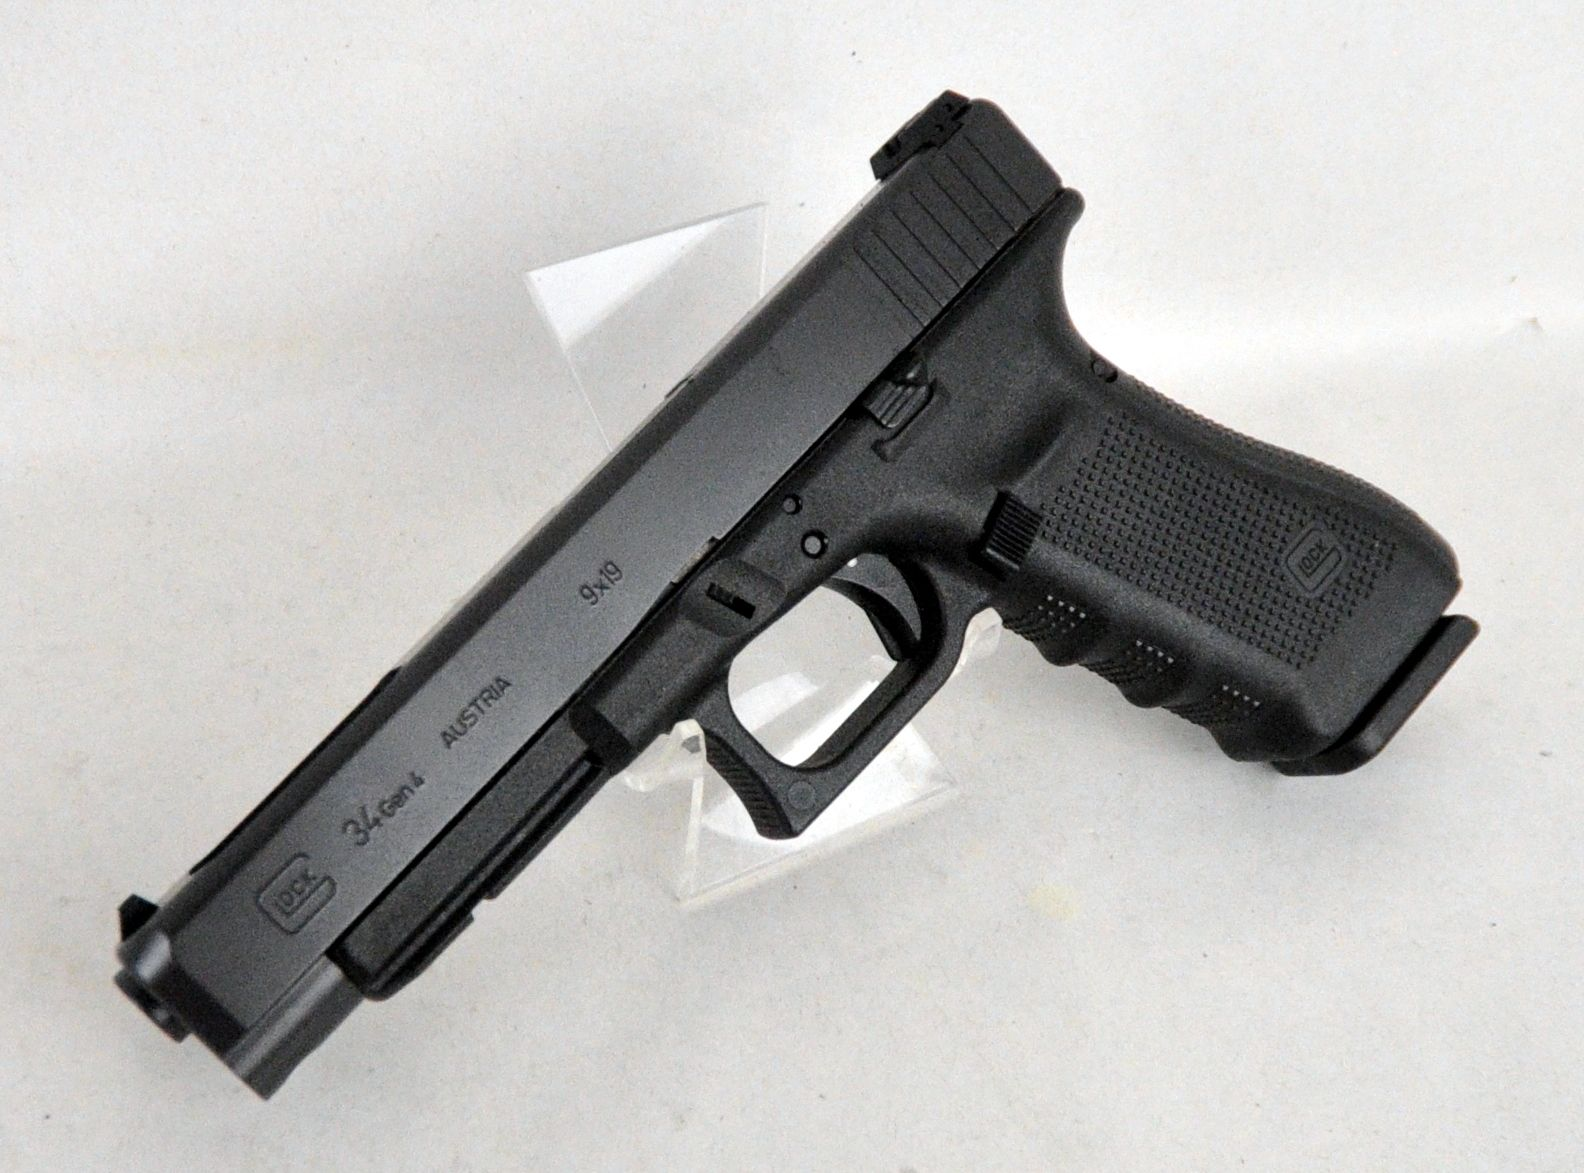 "Glock 34 Gen 4 9mm 5.31"" *NIB*. The 4th Gen Glock 34 is designed to be the same overall length as the Government Model 1911 pistols and thus introduces revolutionary design changes to the ""Tactical/ Practical"" Glock pistol. It features a Modular Back Strap design; a scientifically designed, real-world-tested, Gen4 rough textured frame; and an accessory rail for attachments. 17+1 capacity of .40 S&W. 5.31"" barrel. 25.95 oz. $624.99"